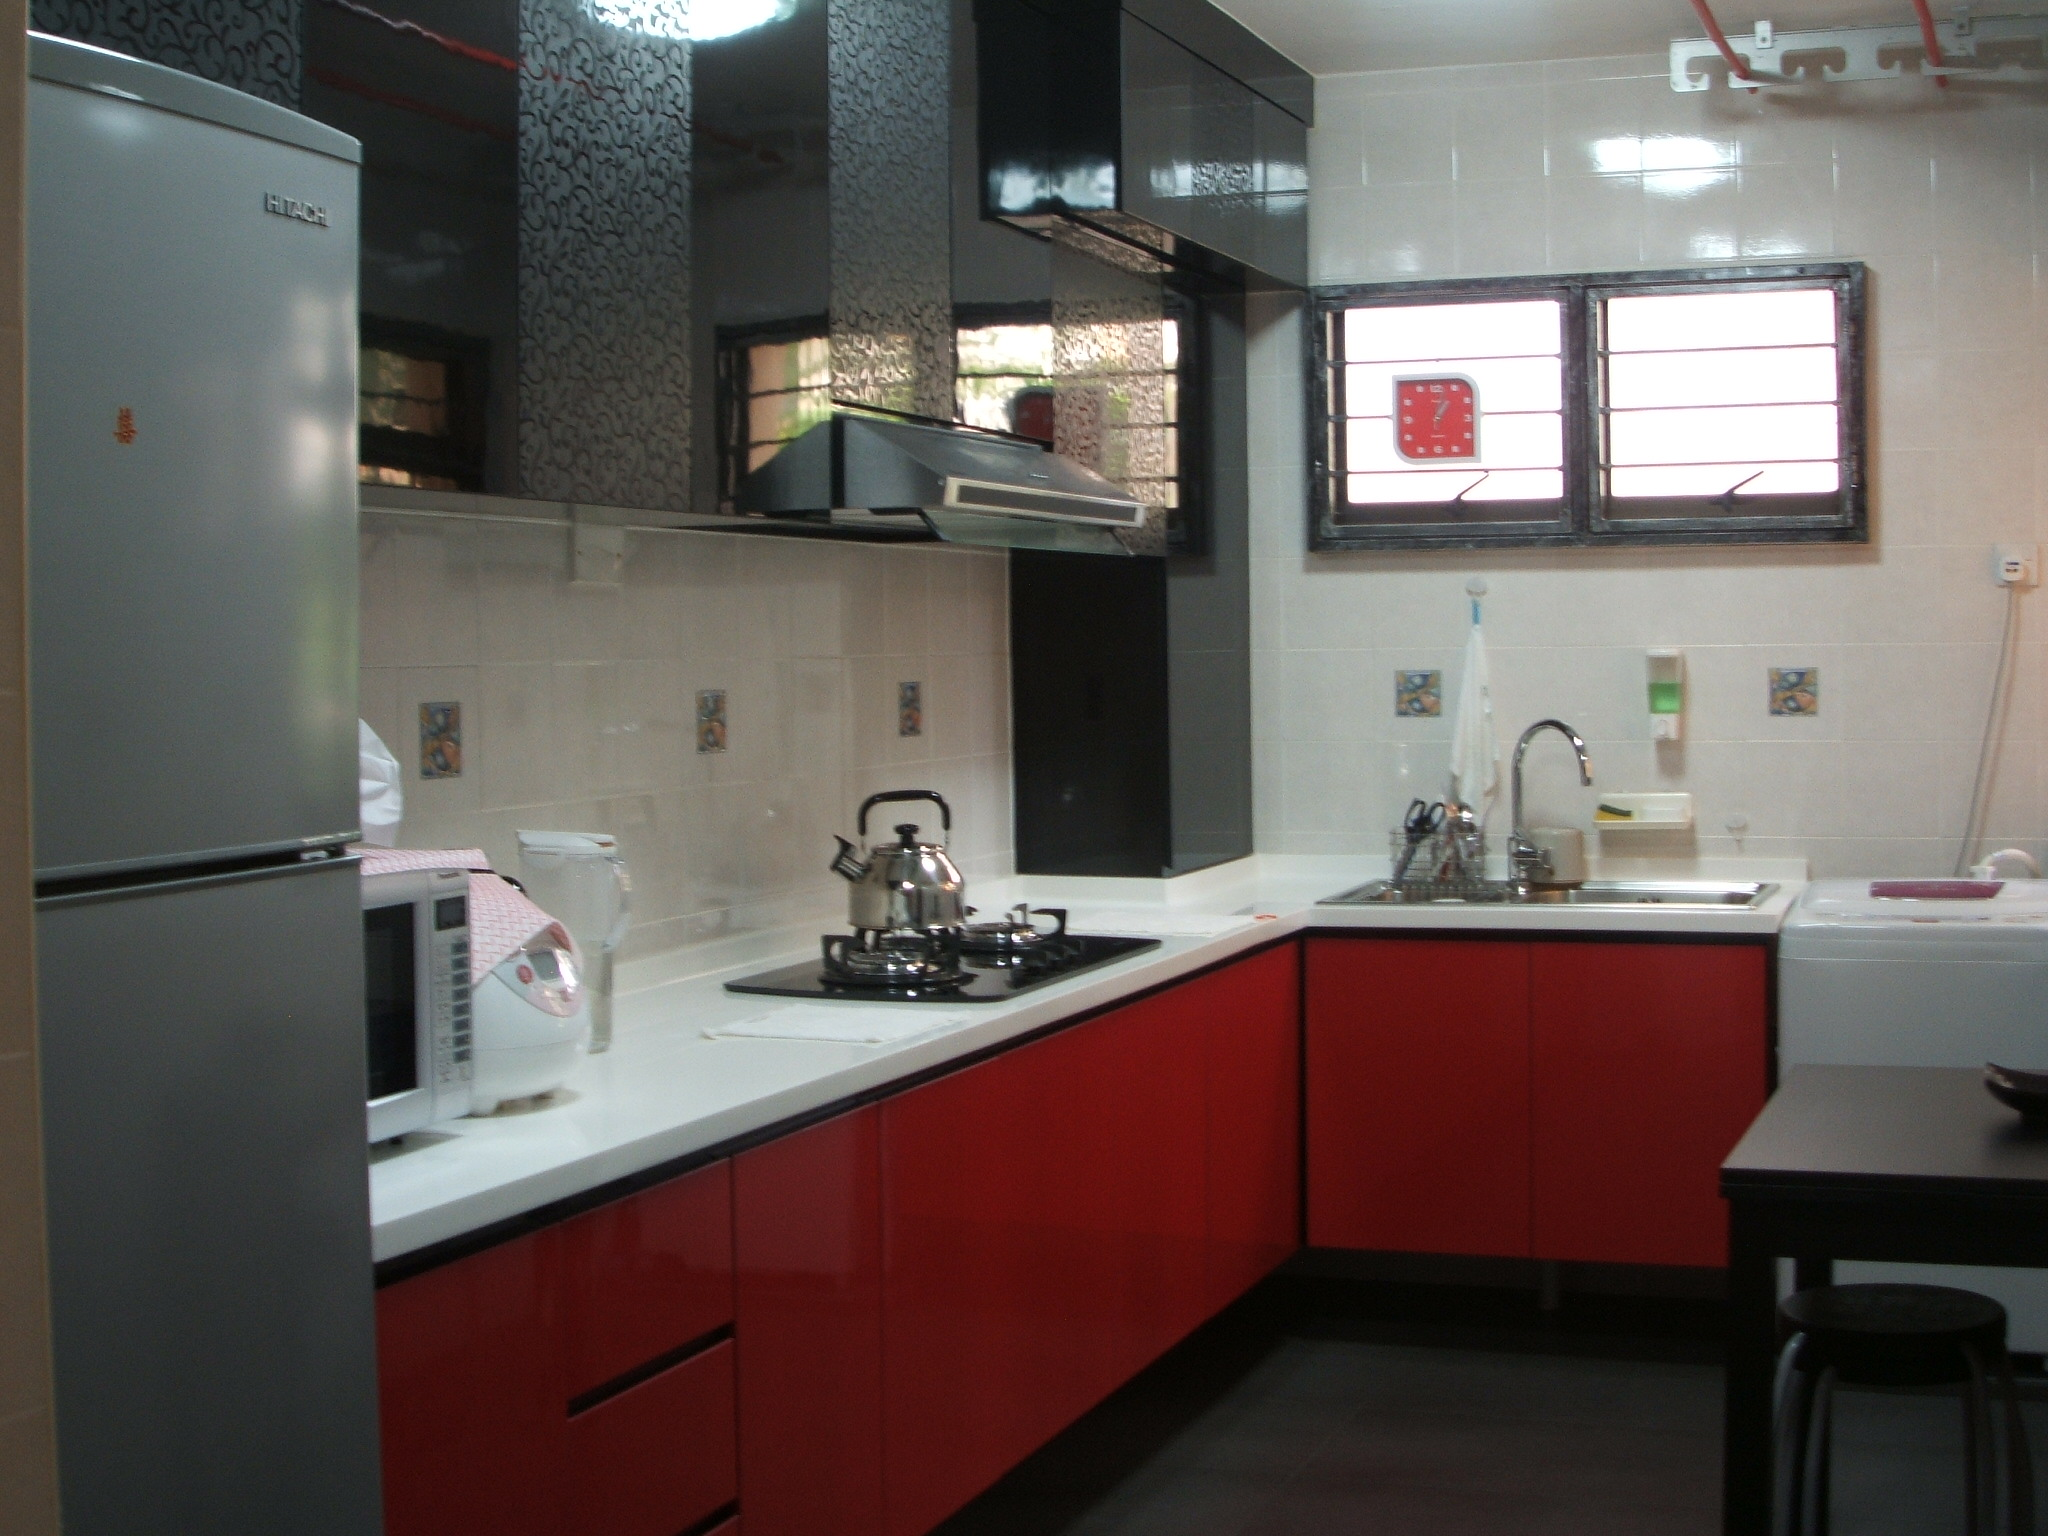 Unconventional Color Combination For The Kitchen Interior Designing Ideas